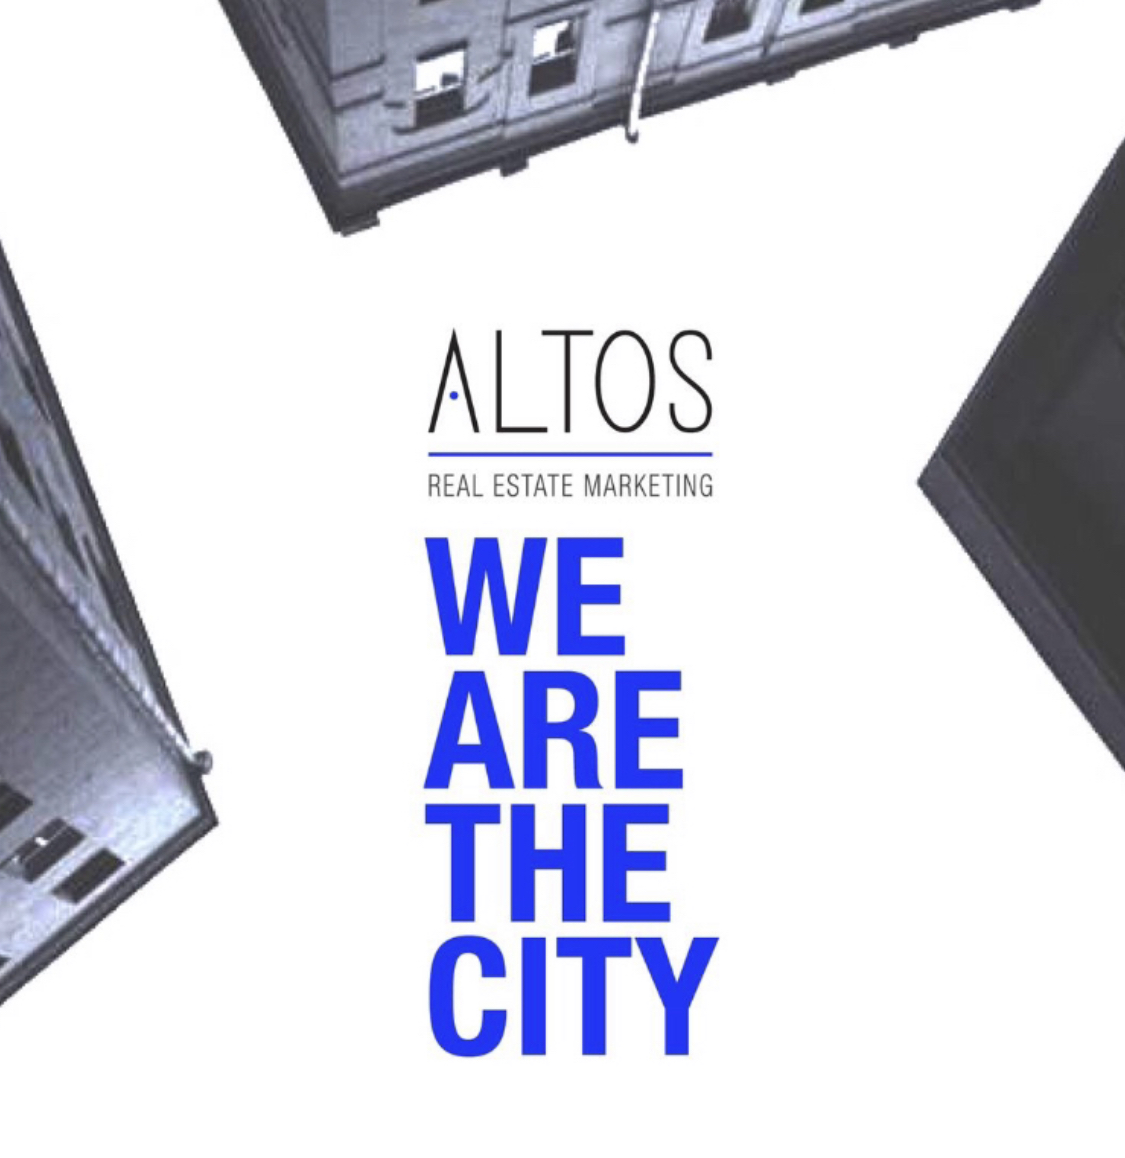 ALTOS REAL ESTATE